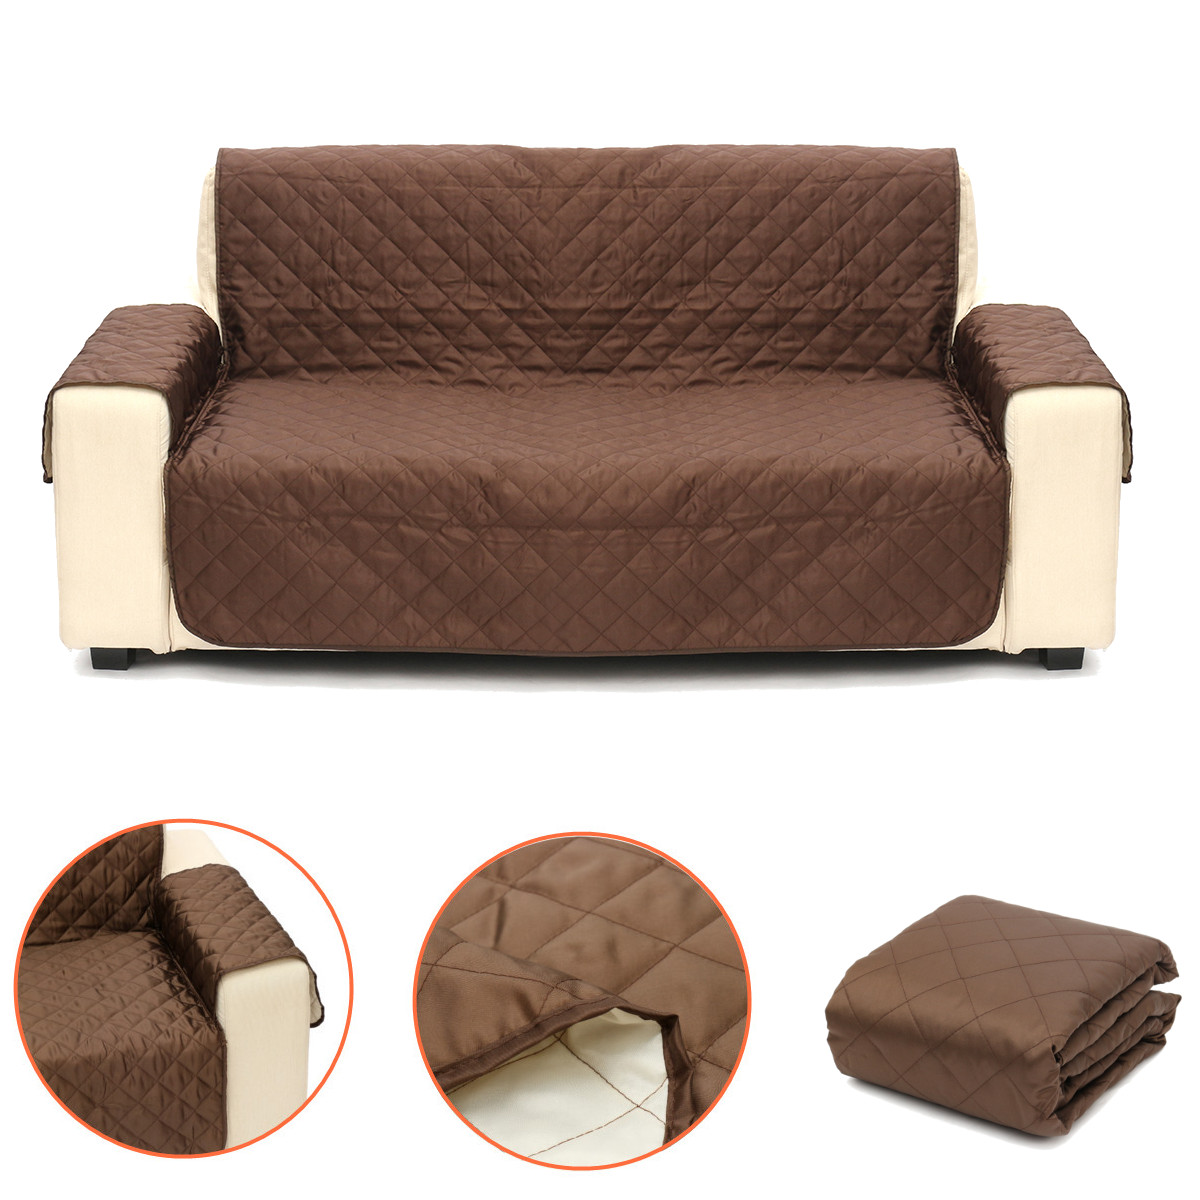 Peachy Us 13 53 42 Off Pet Dog Sofa Slipcovers Furniture Couch Protective Seat Cover Pad Reversible Cushion Fits 2 Seats Chocolate In Sofa Cover From Home Lamtechconsult Wood Chair Design Ideas Lamtechconsultcom